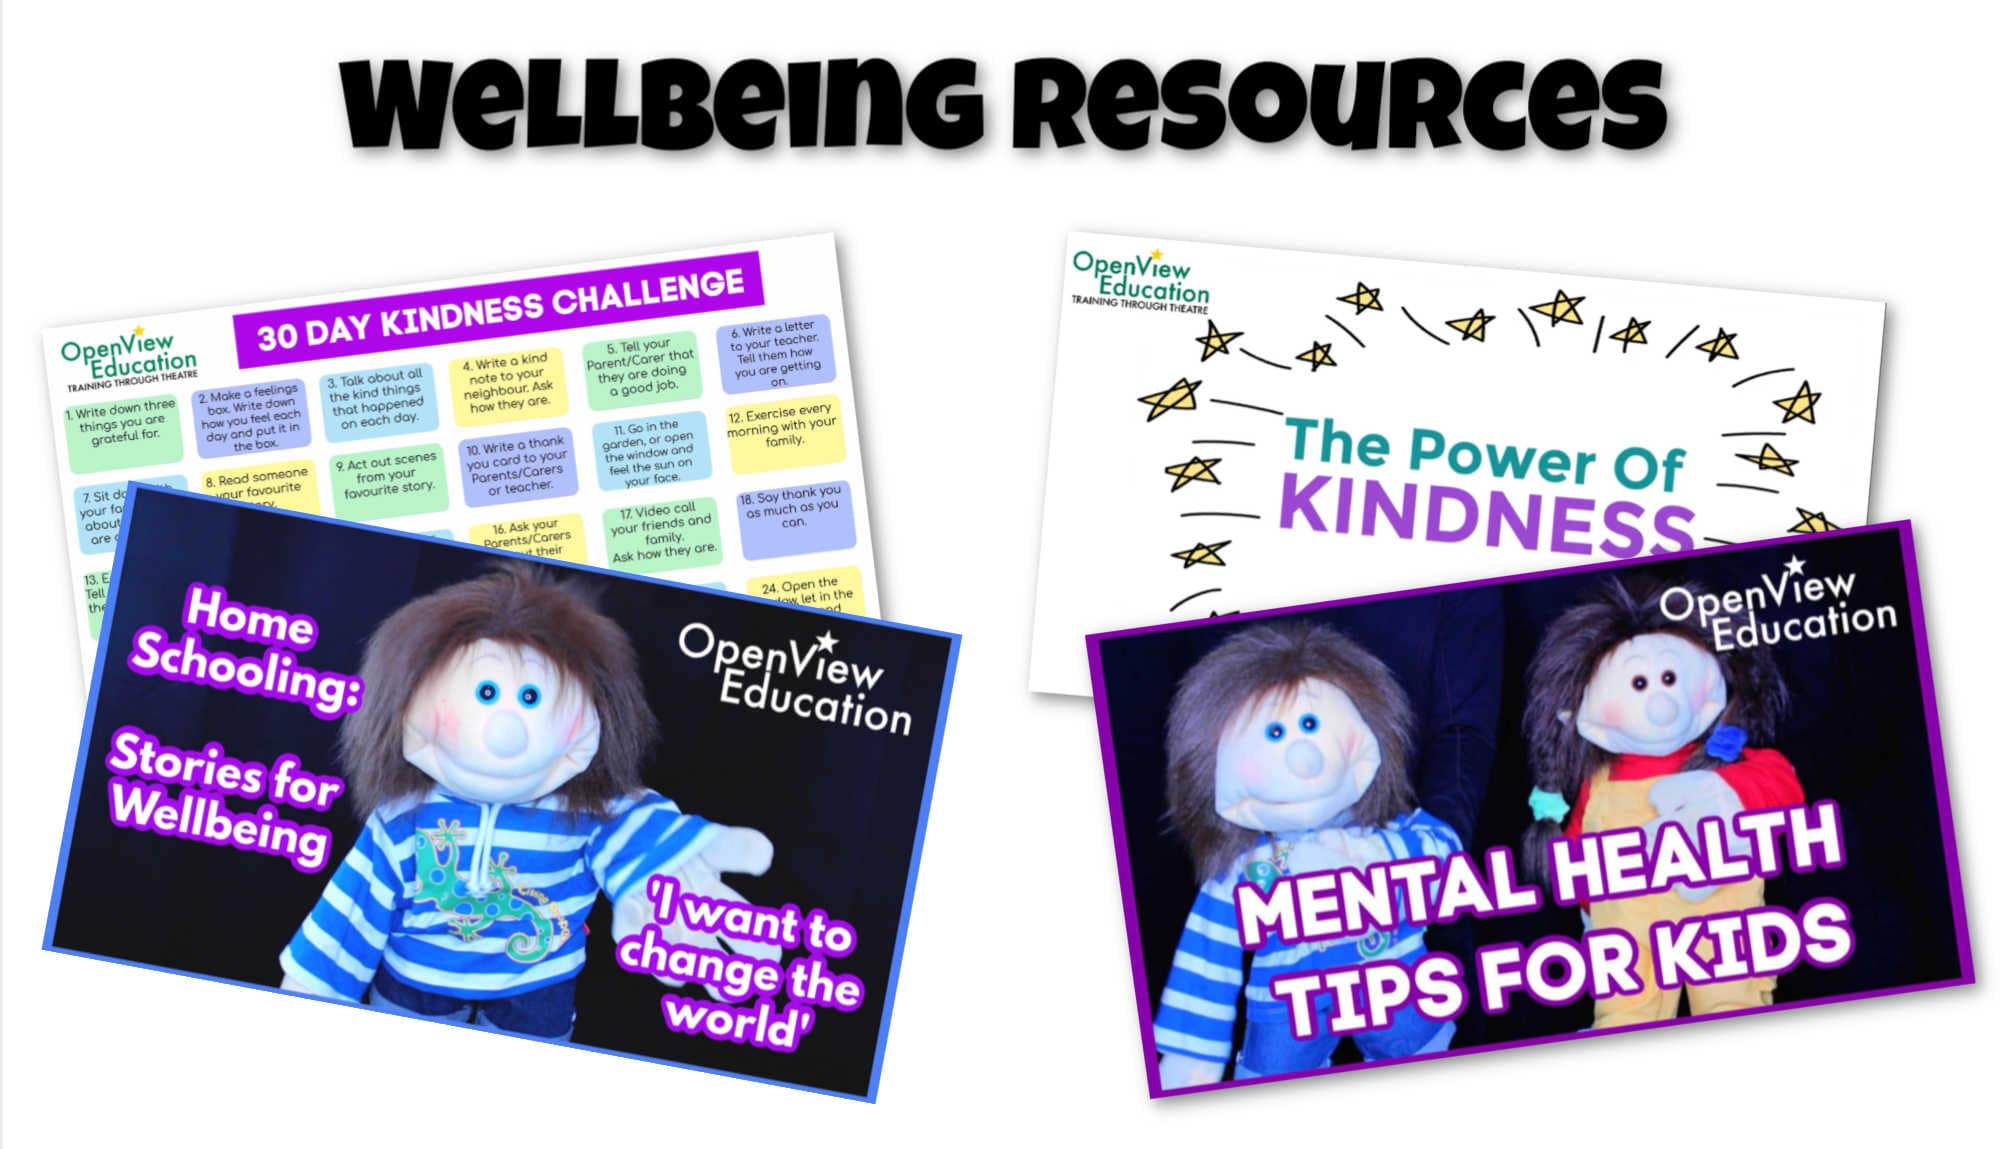 wellbeing resources for schools